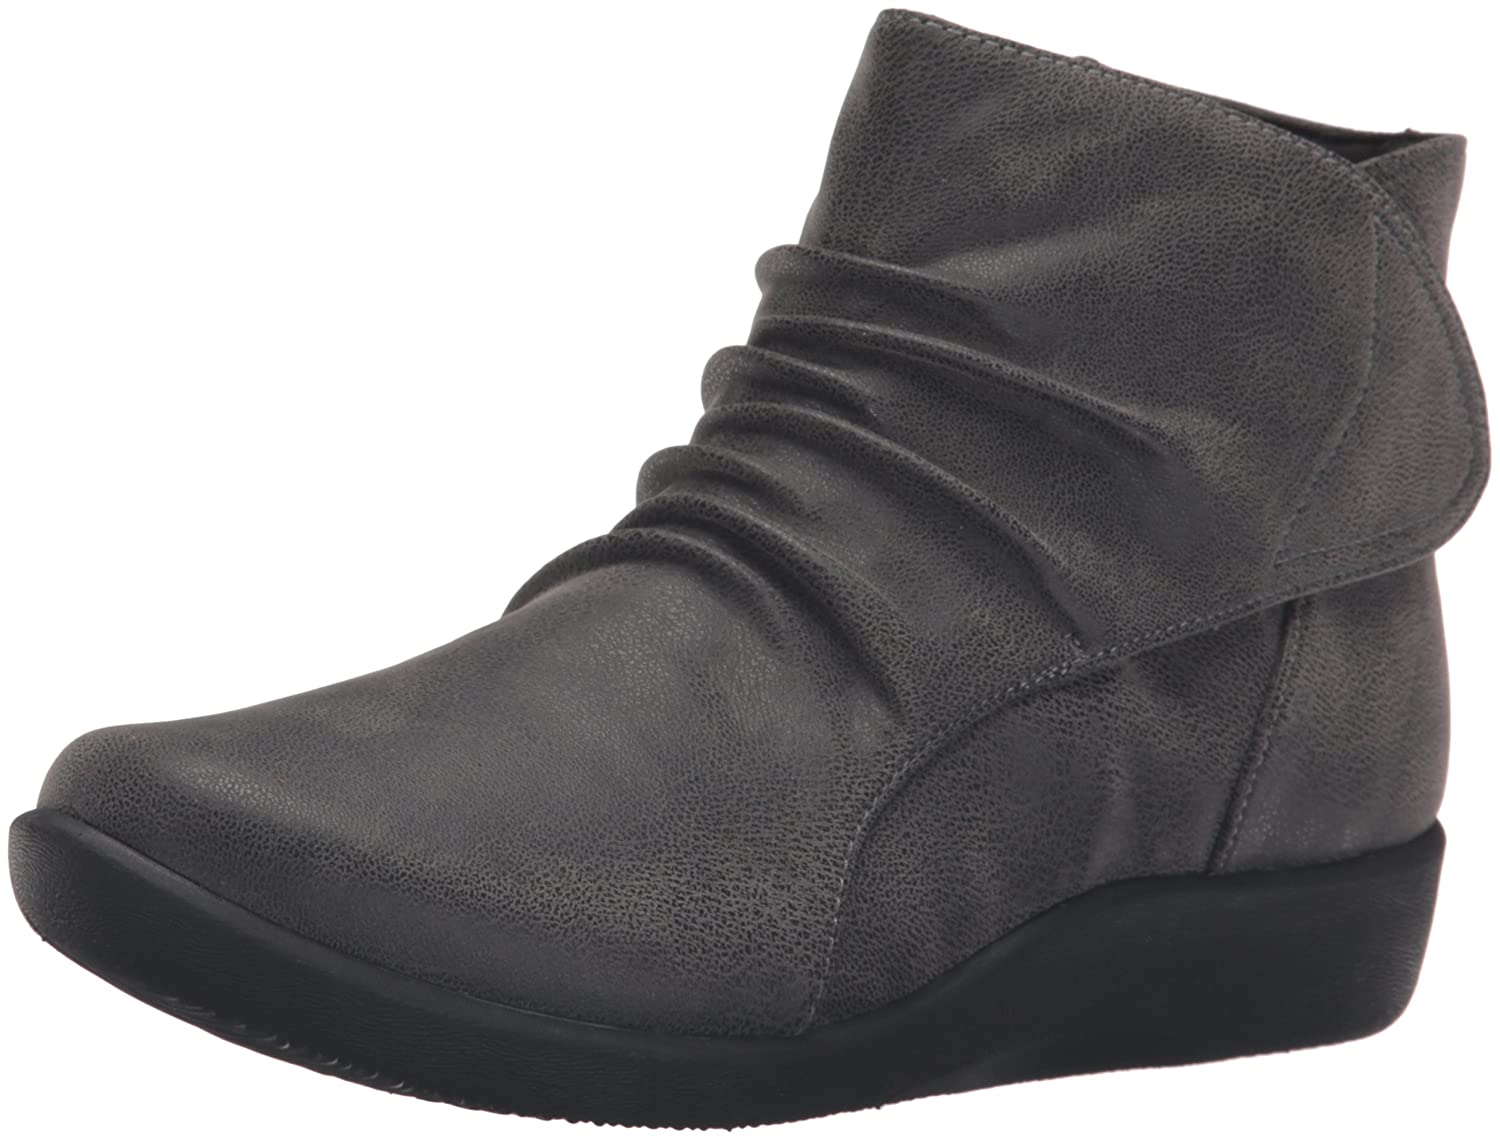 CLARKS Women's Sillian Chell Boot B0198WAZBO 8 B(M) US|Grey Synthetic Nubuck